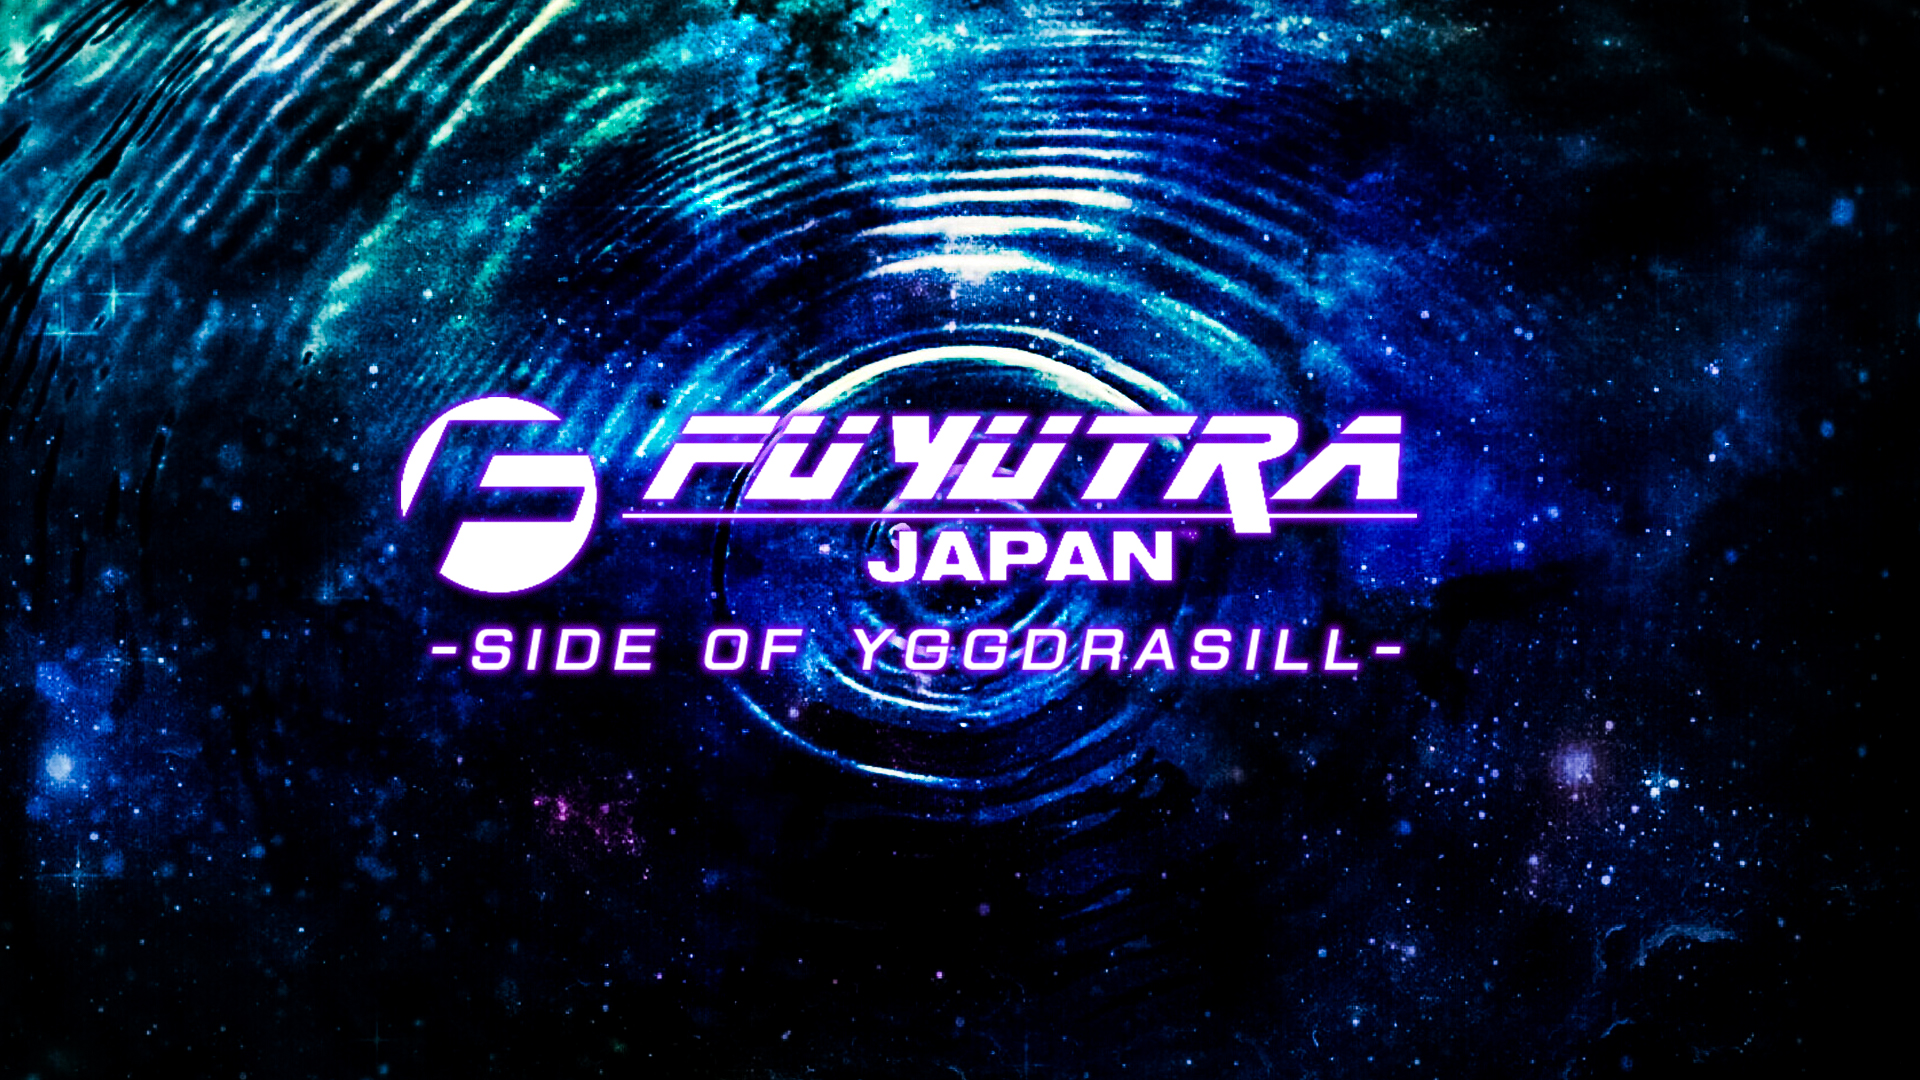 FUYUTORA JAPAN -Side of Yggdrasill-